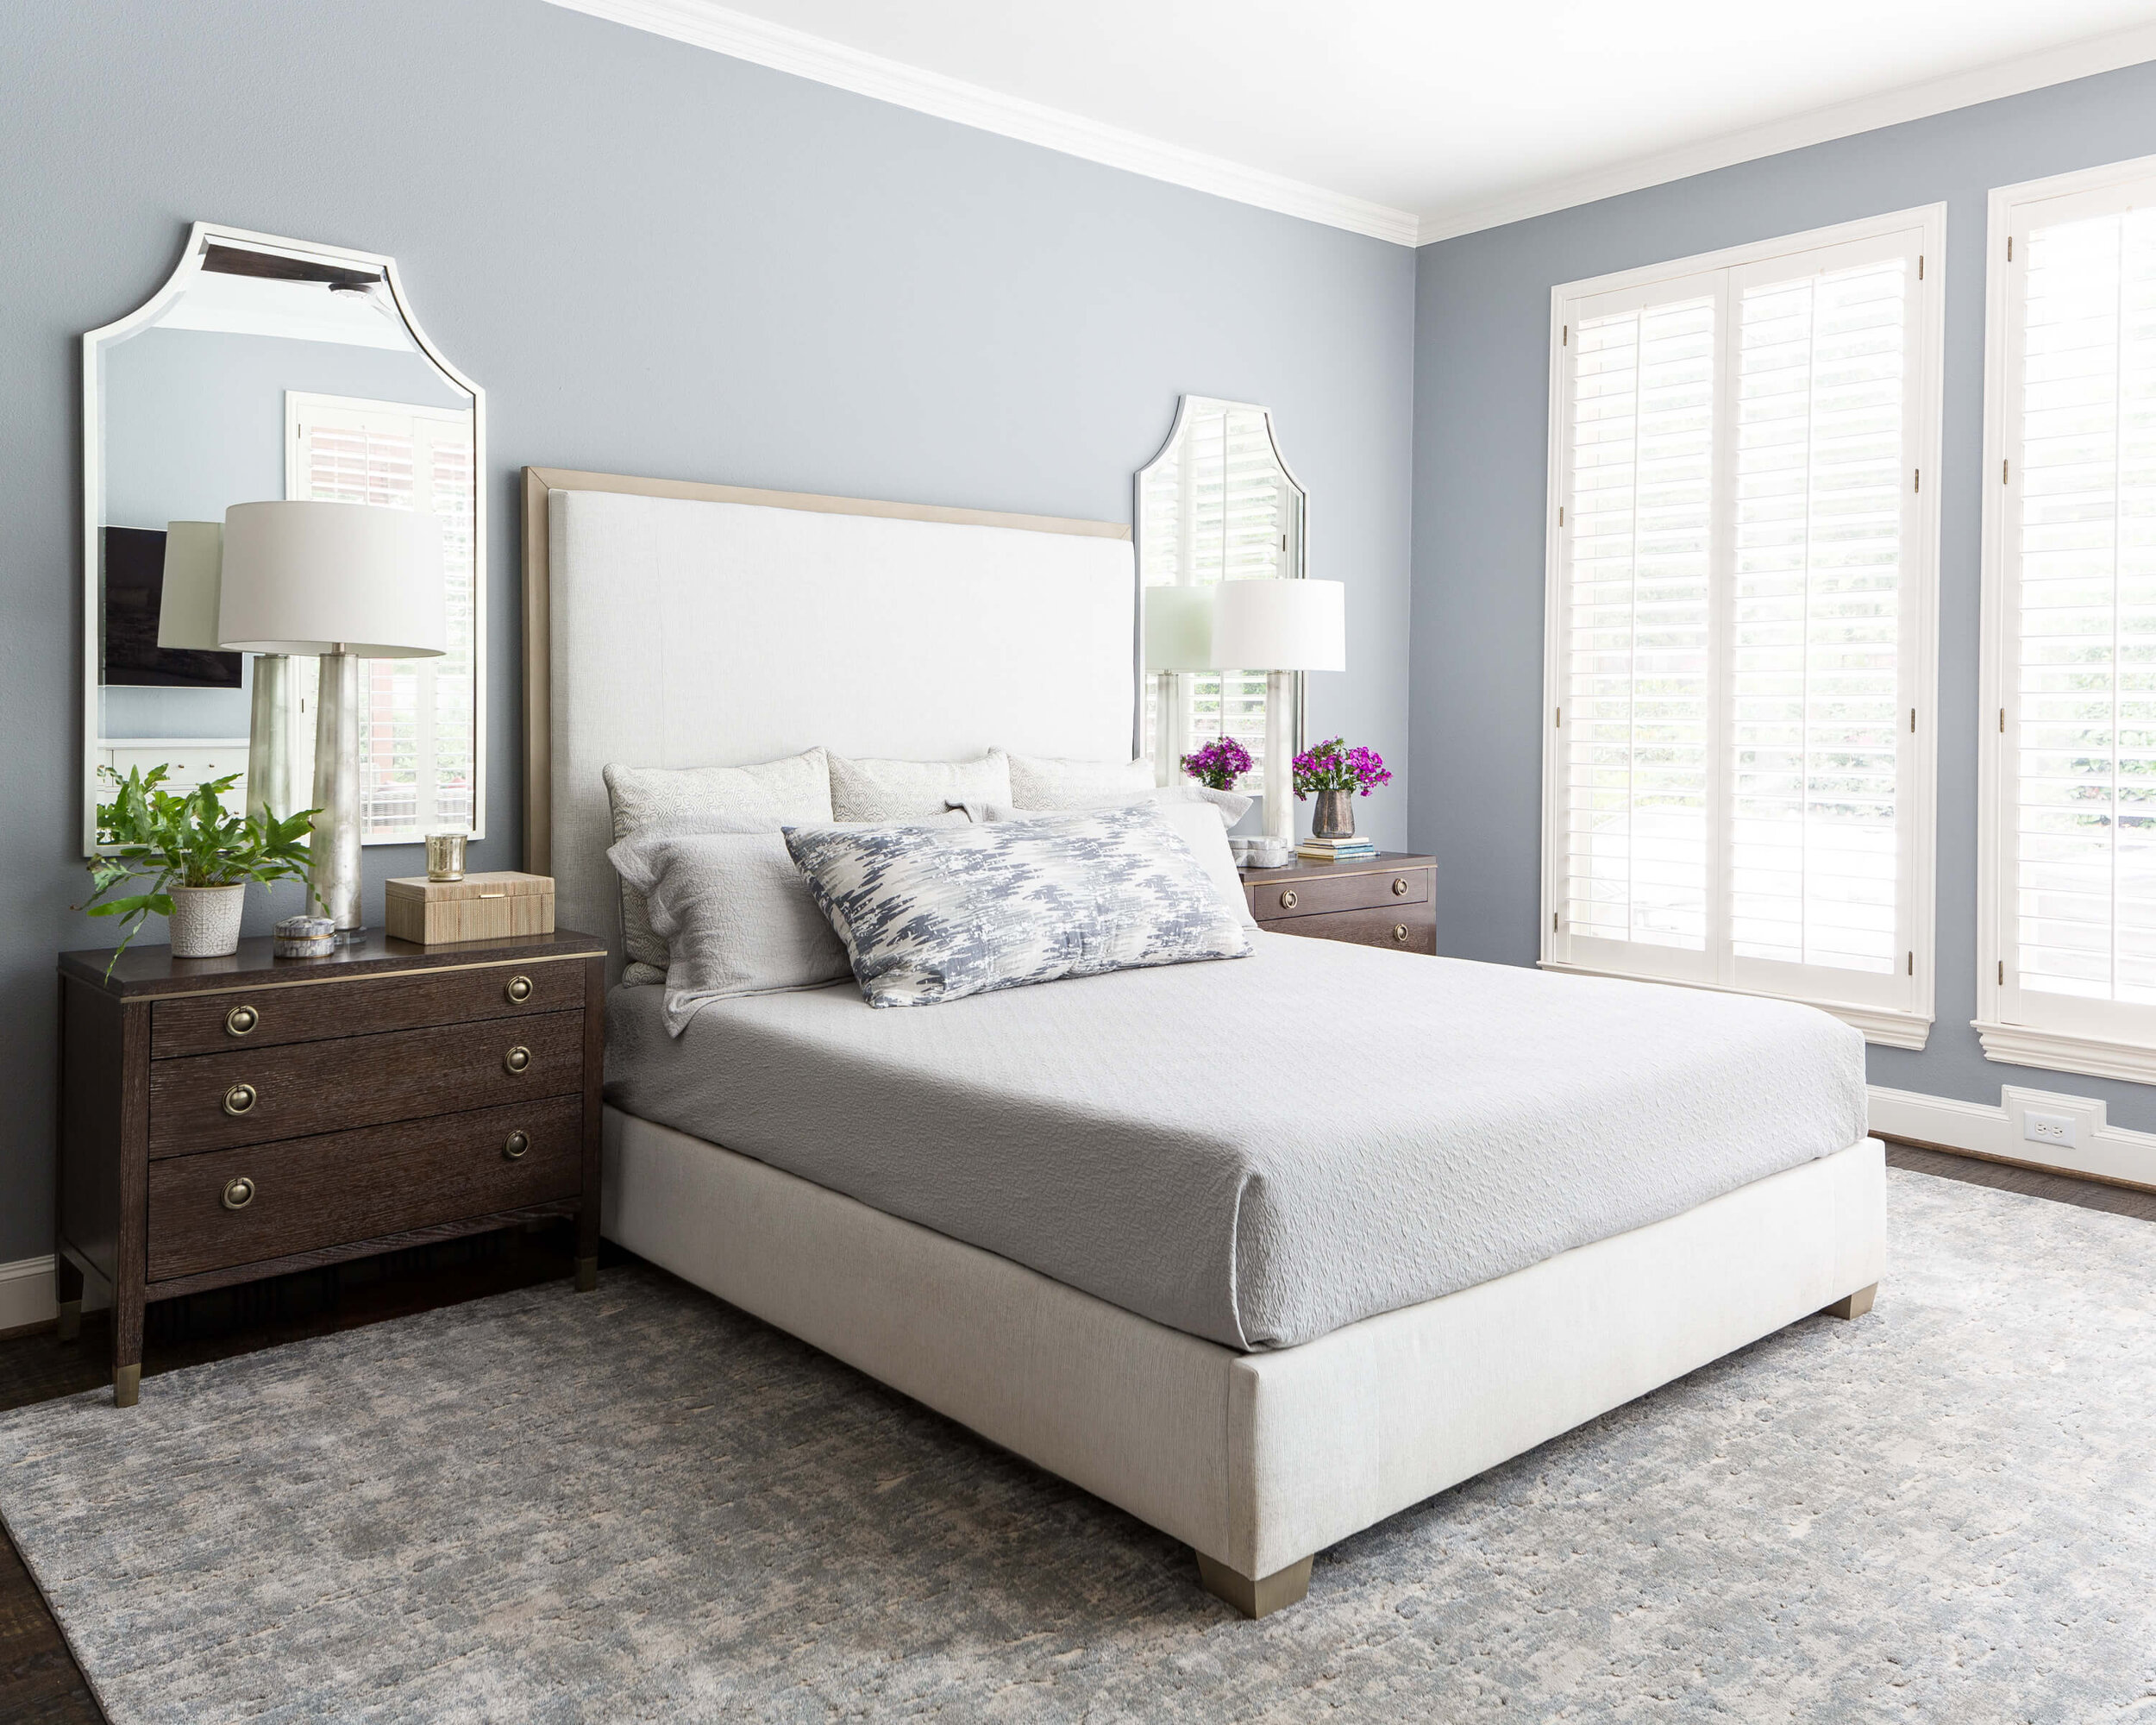 Favorite Blue Green Gray Paint Colors Perfect For A Tranquil Bedroom Designed